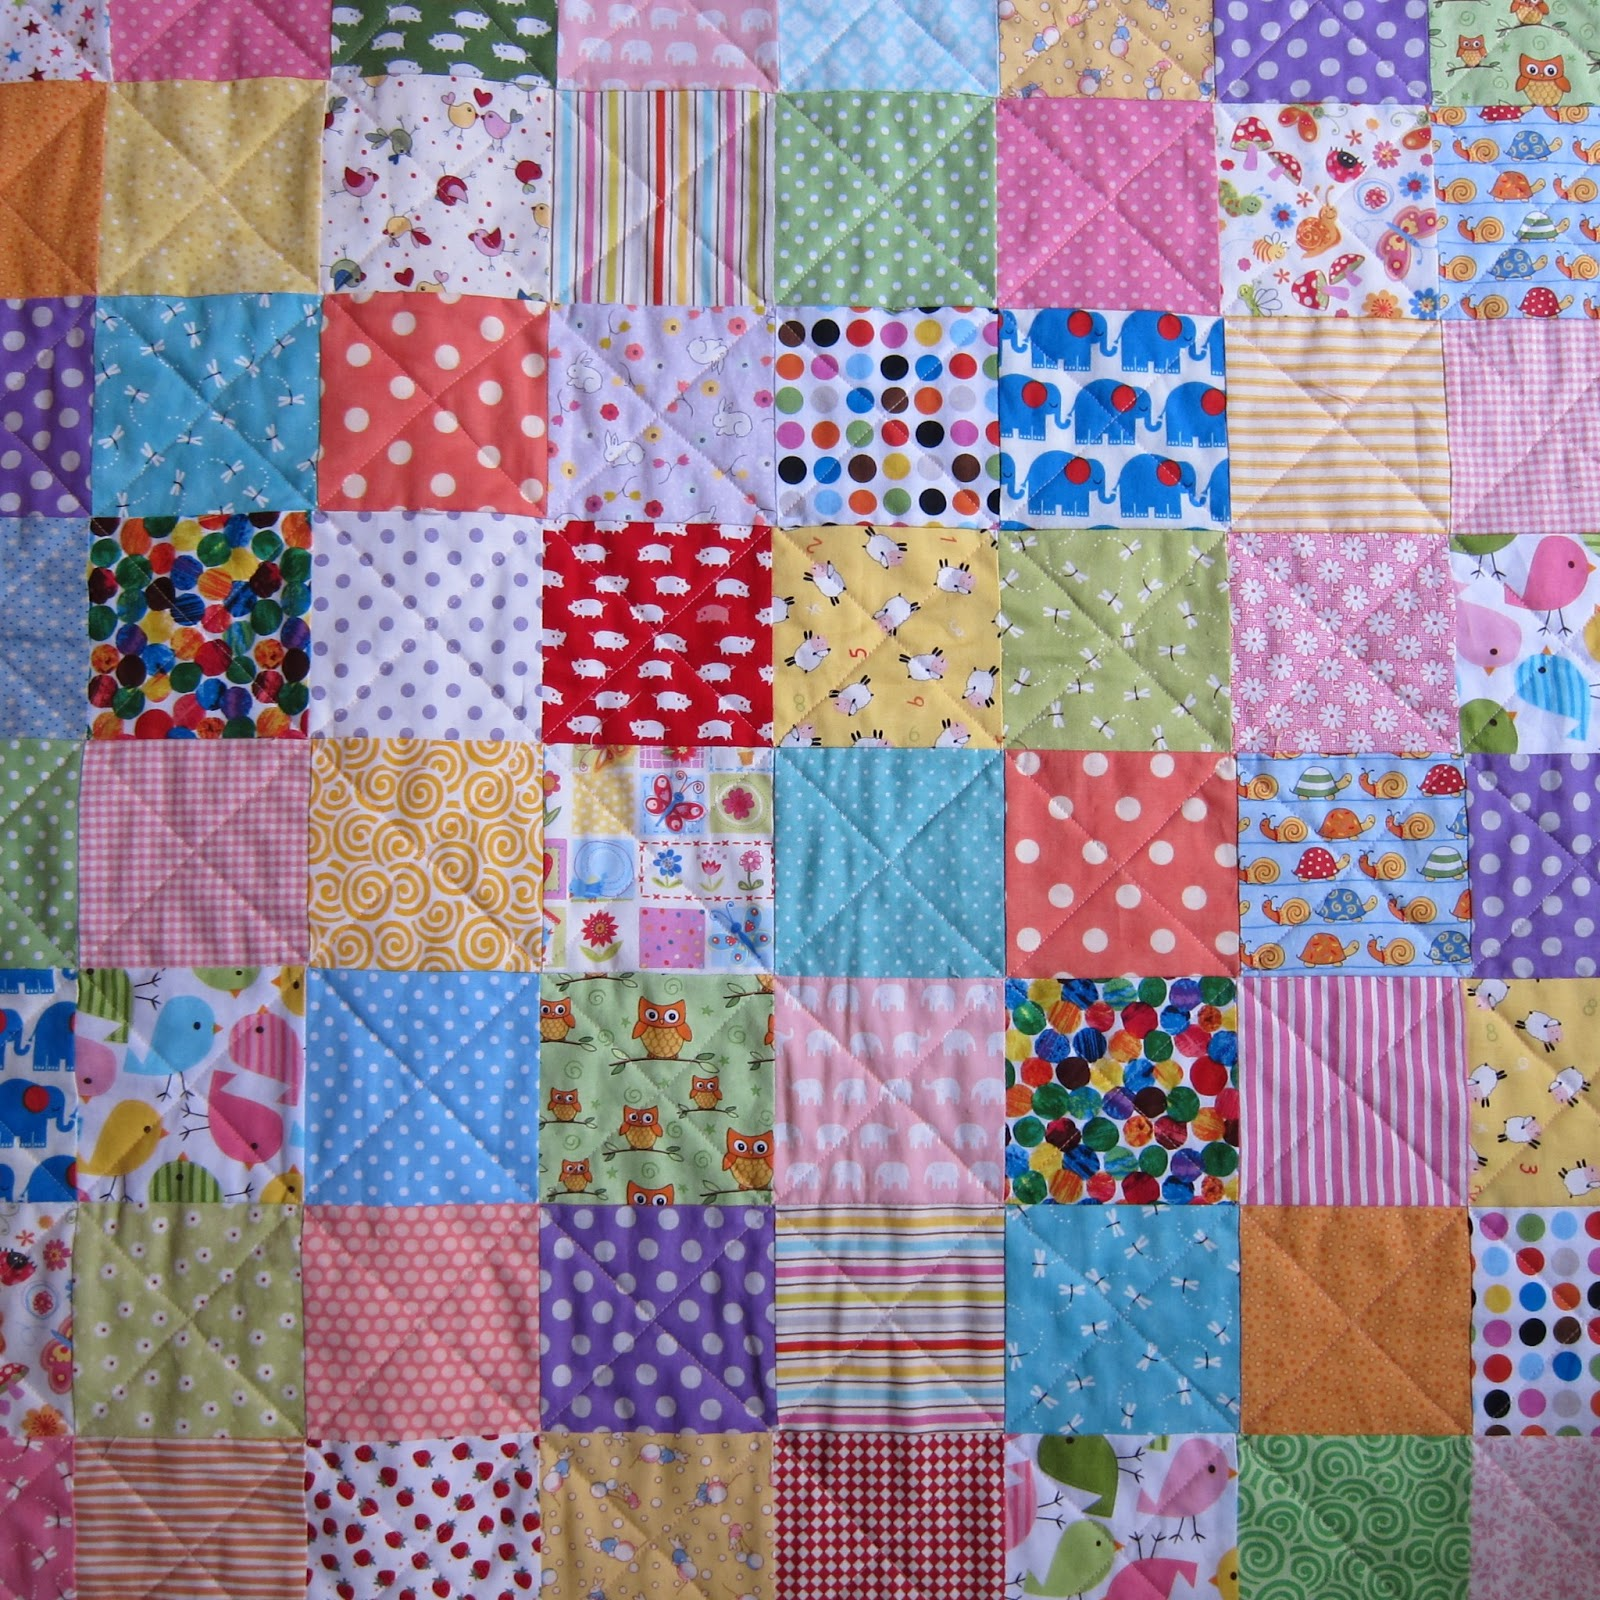 Bashley Quilters Hampshire And Isle Of Wight Air Ambulance